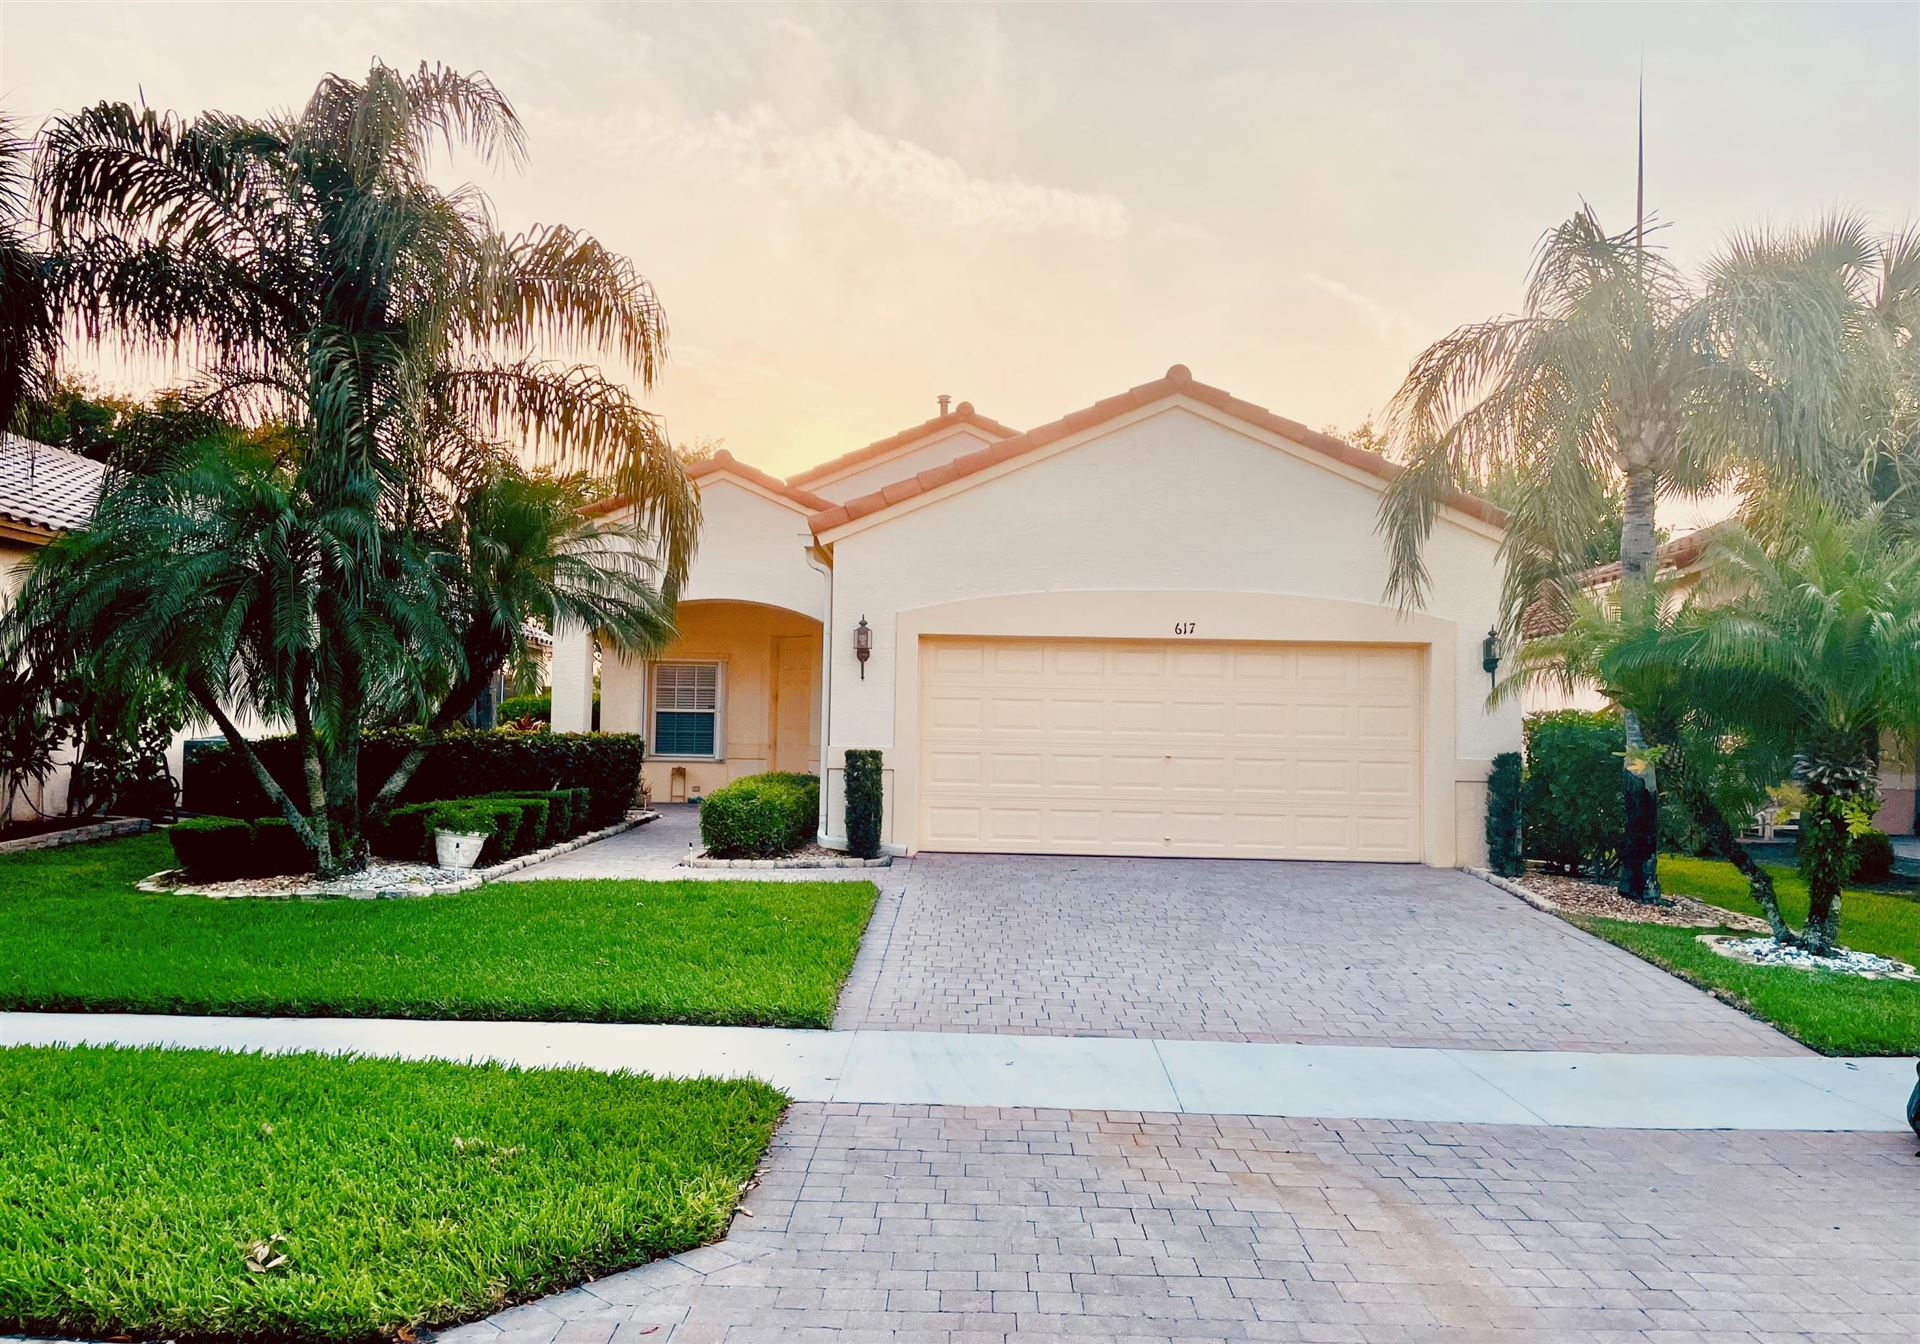 617 NW Whitfield Way, Port Saint Lucie, FL 34986 - #: RX-10712720